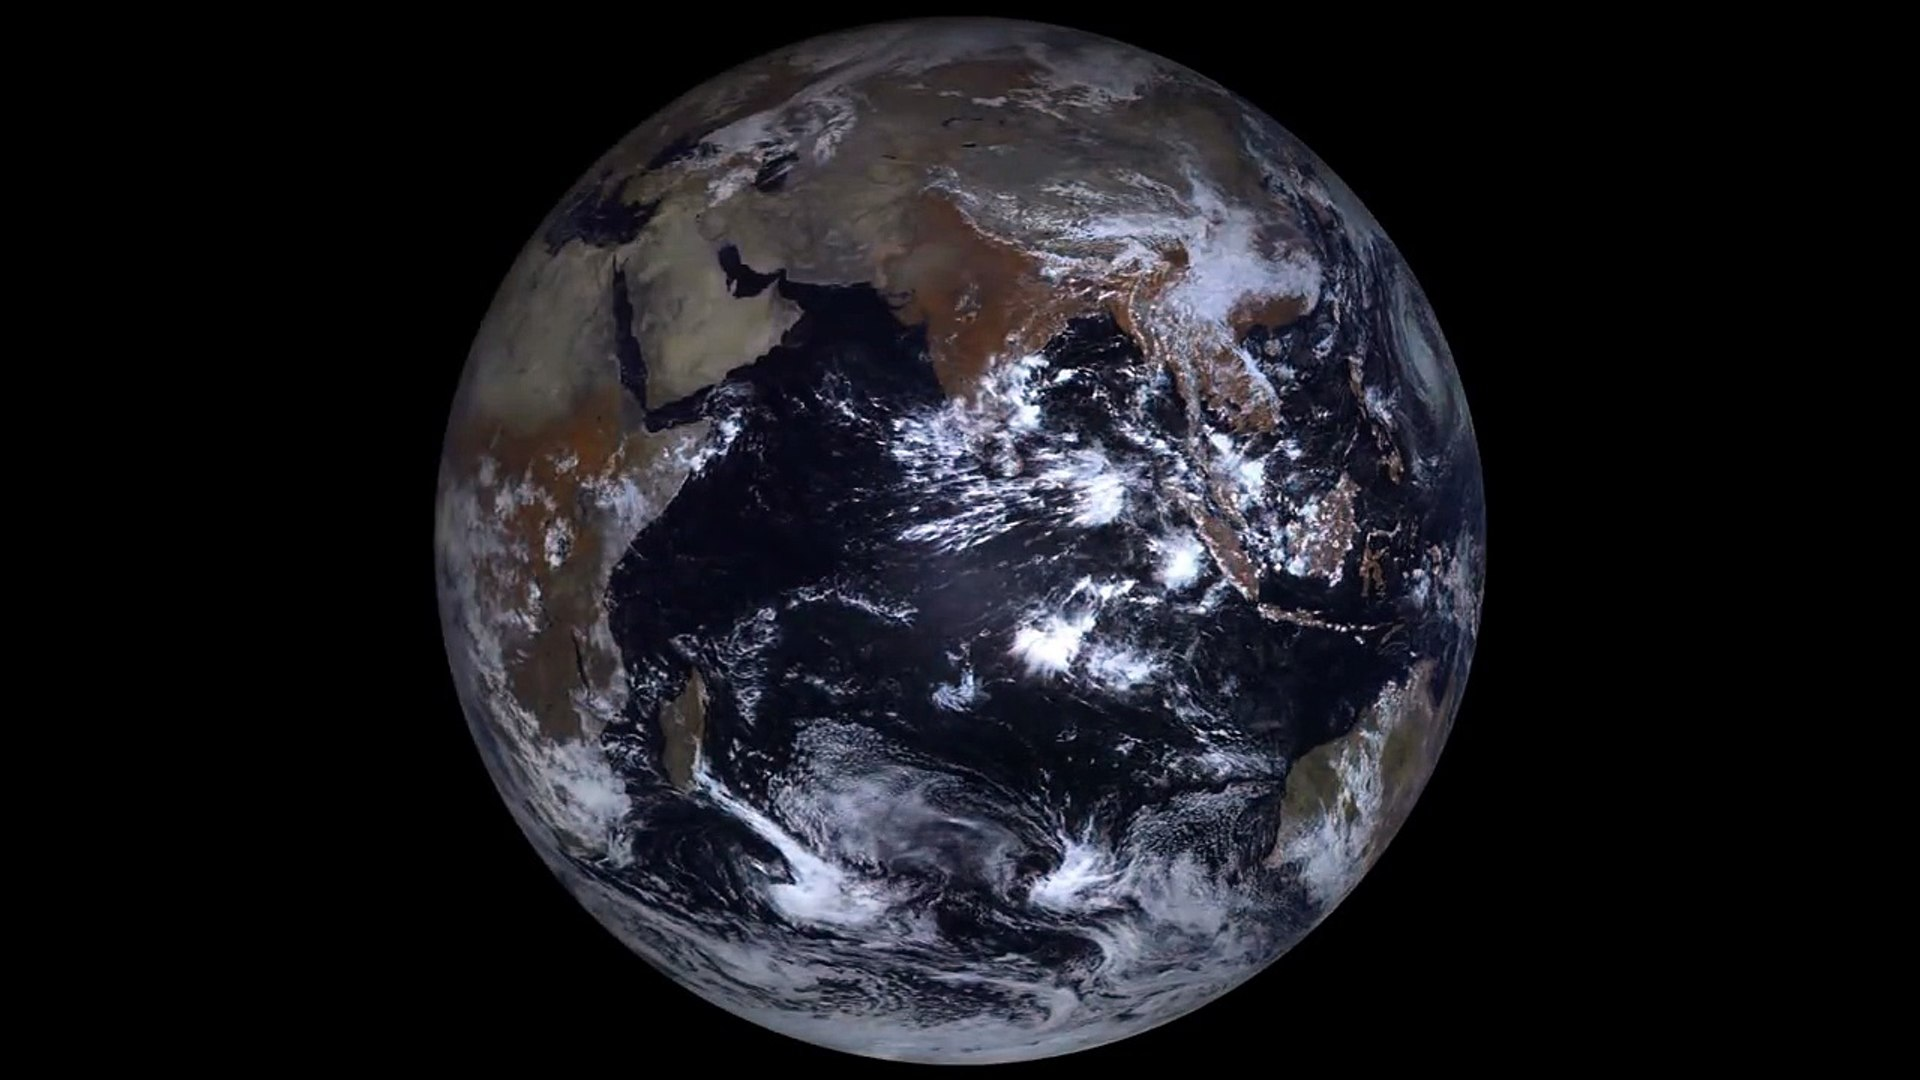 Timelapse of Planet Earth October 2013 to February 2014 - Time Lapse Video